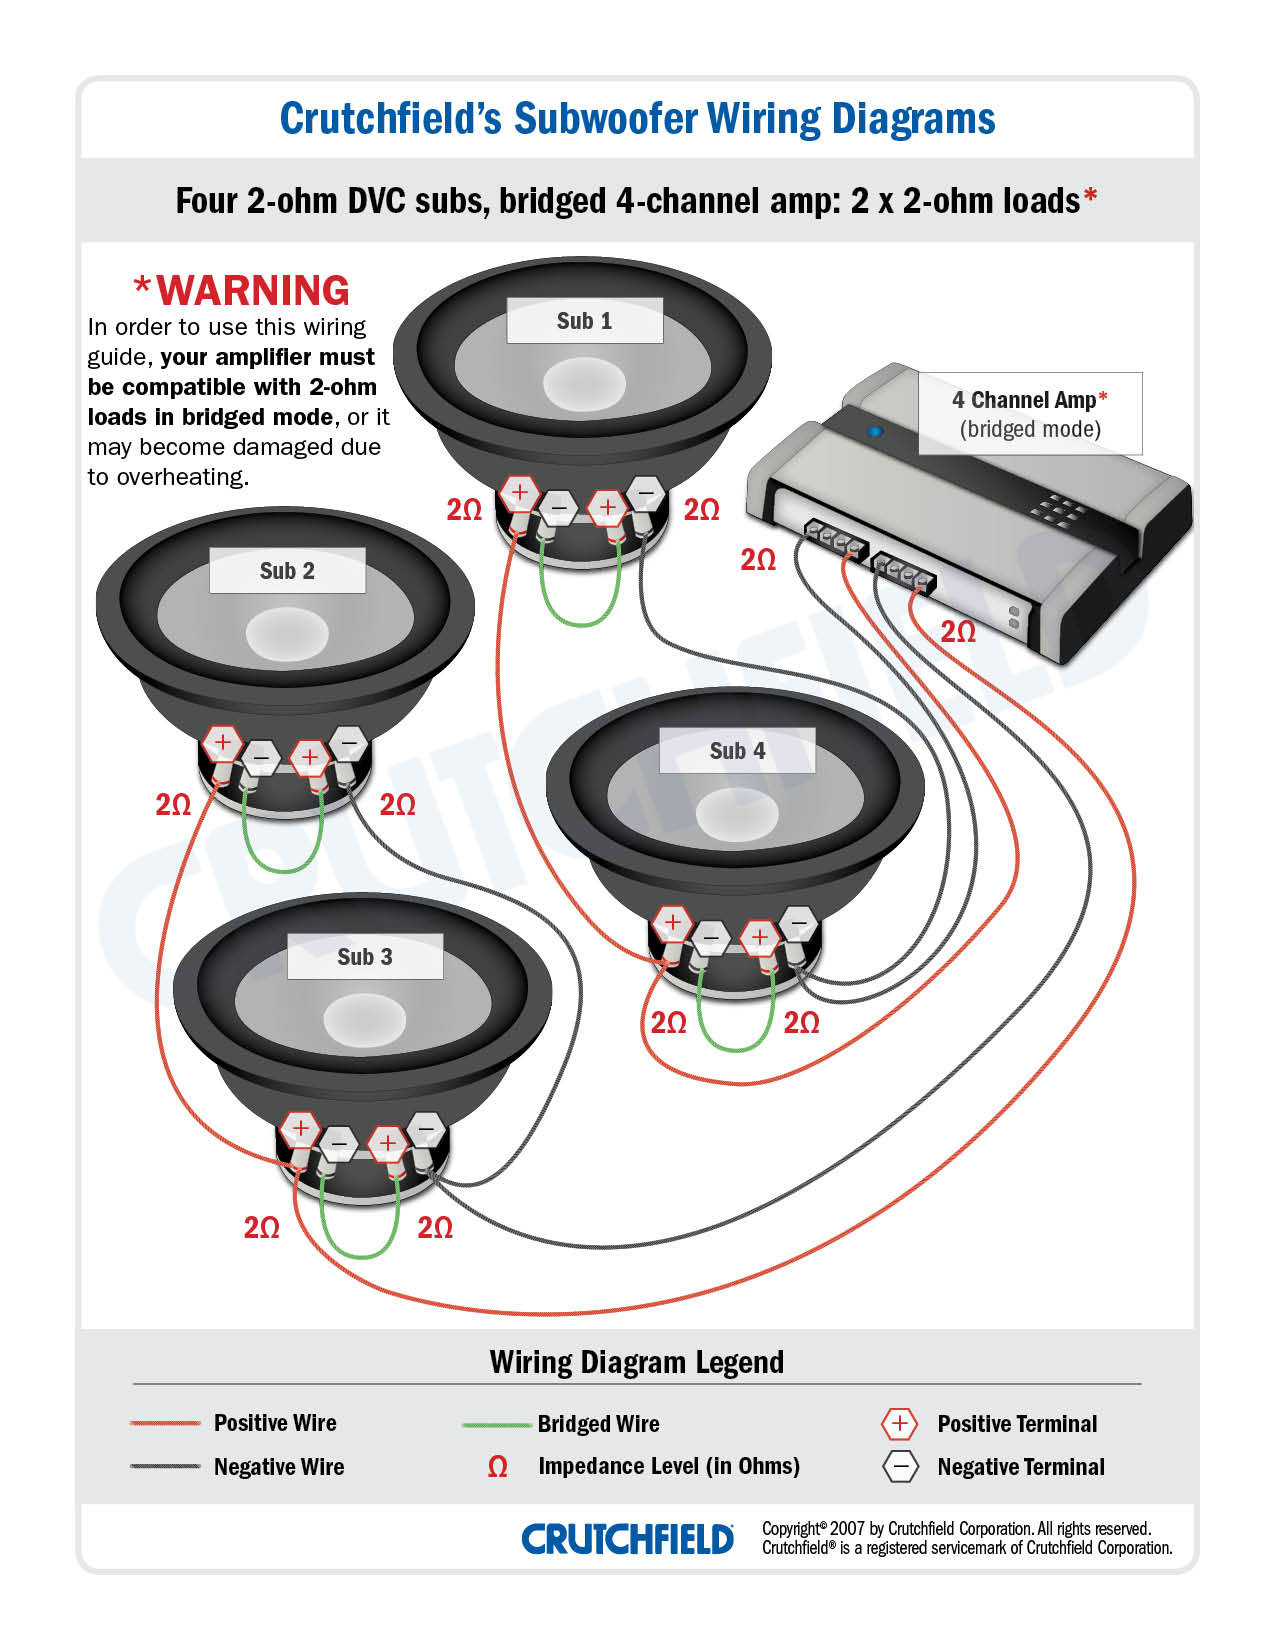 Subwoofer Wiring Diagrams At How To Wire Car Speakers Amp Diagram - Speaker Wiring Diagram